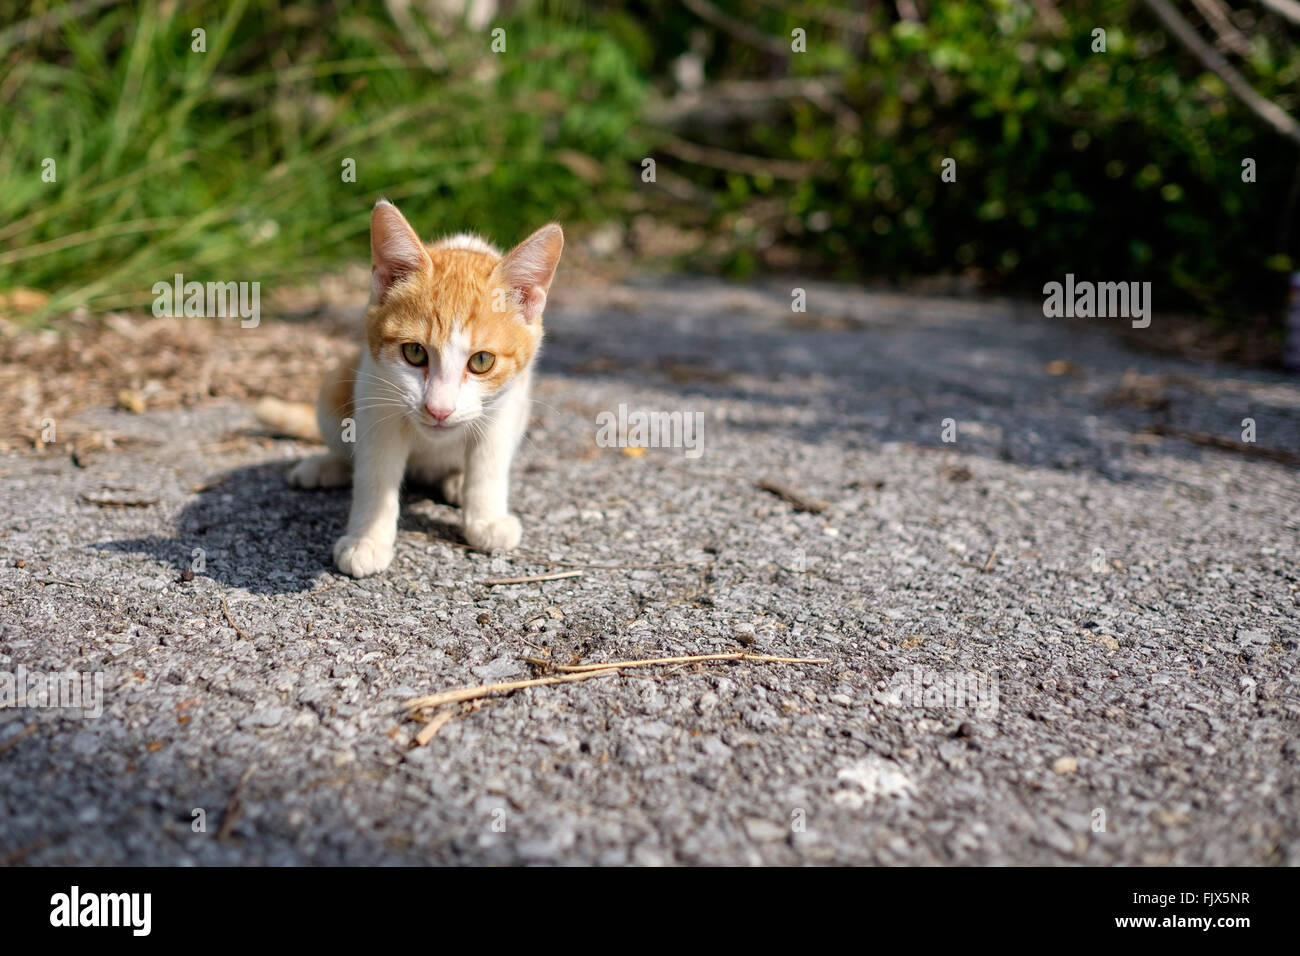 Portrait Of Cat Sitting On Field - Stock Image